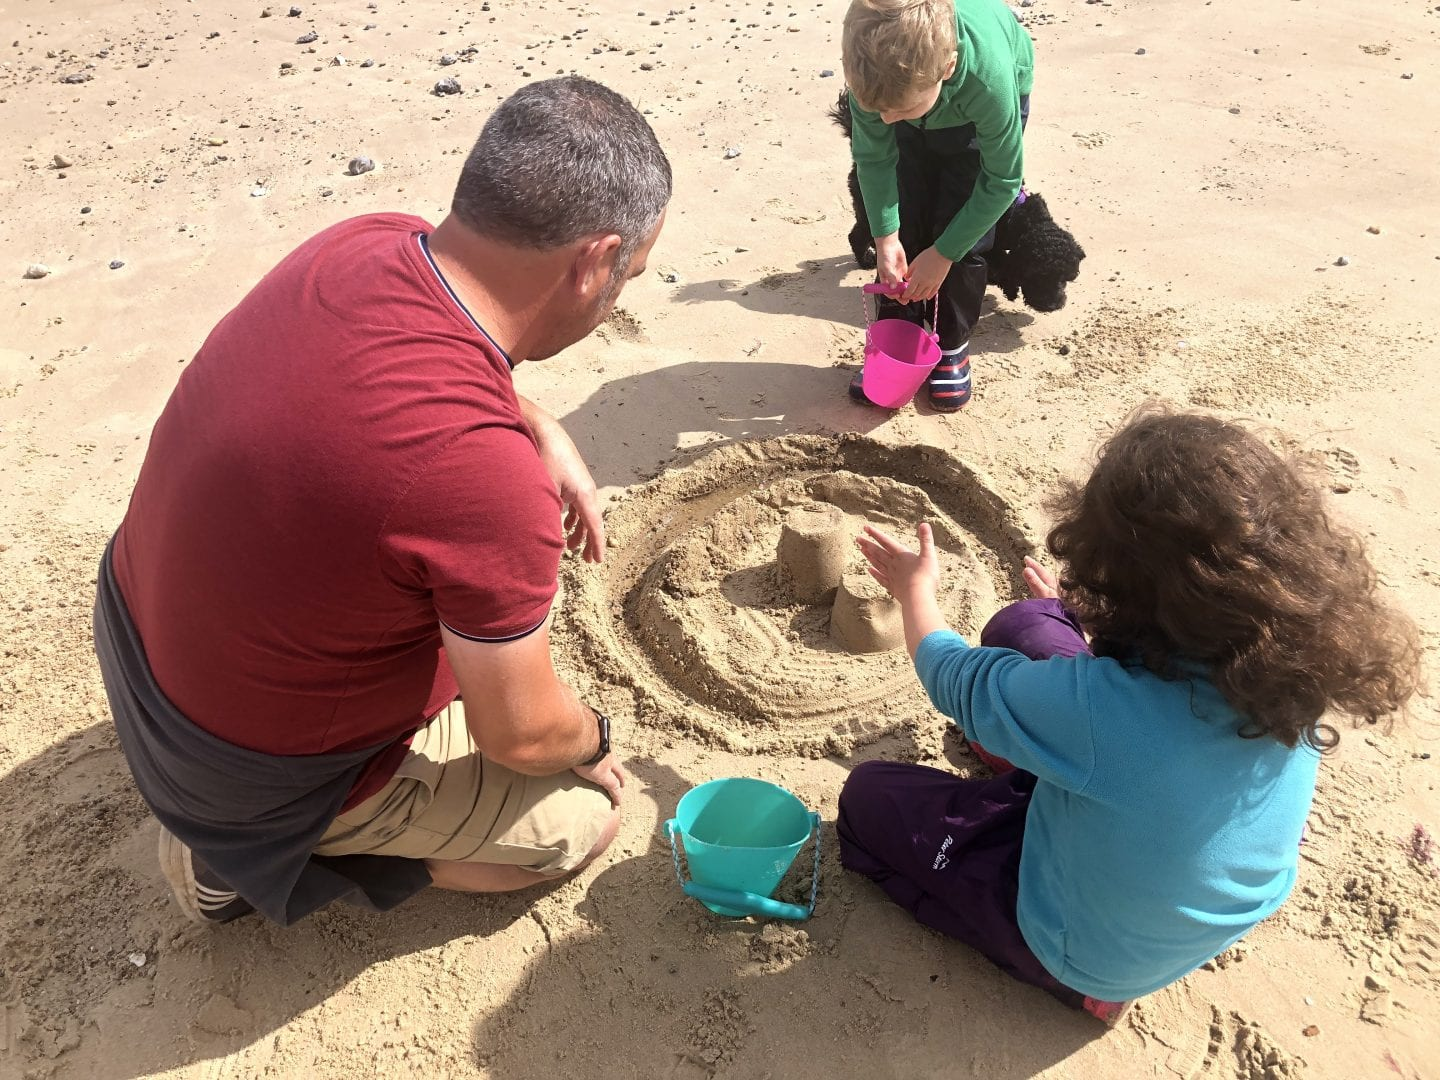 young family building sandcastles